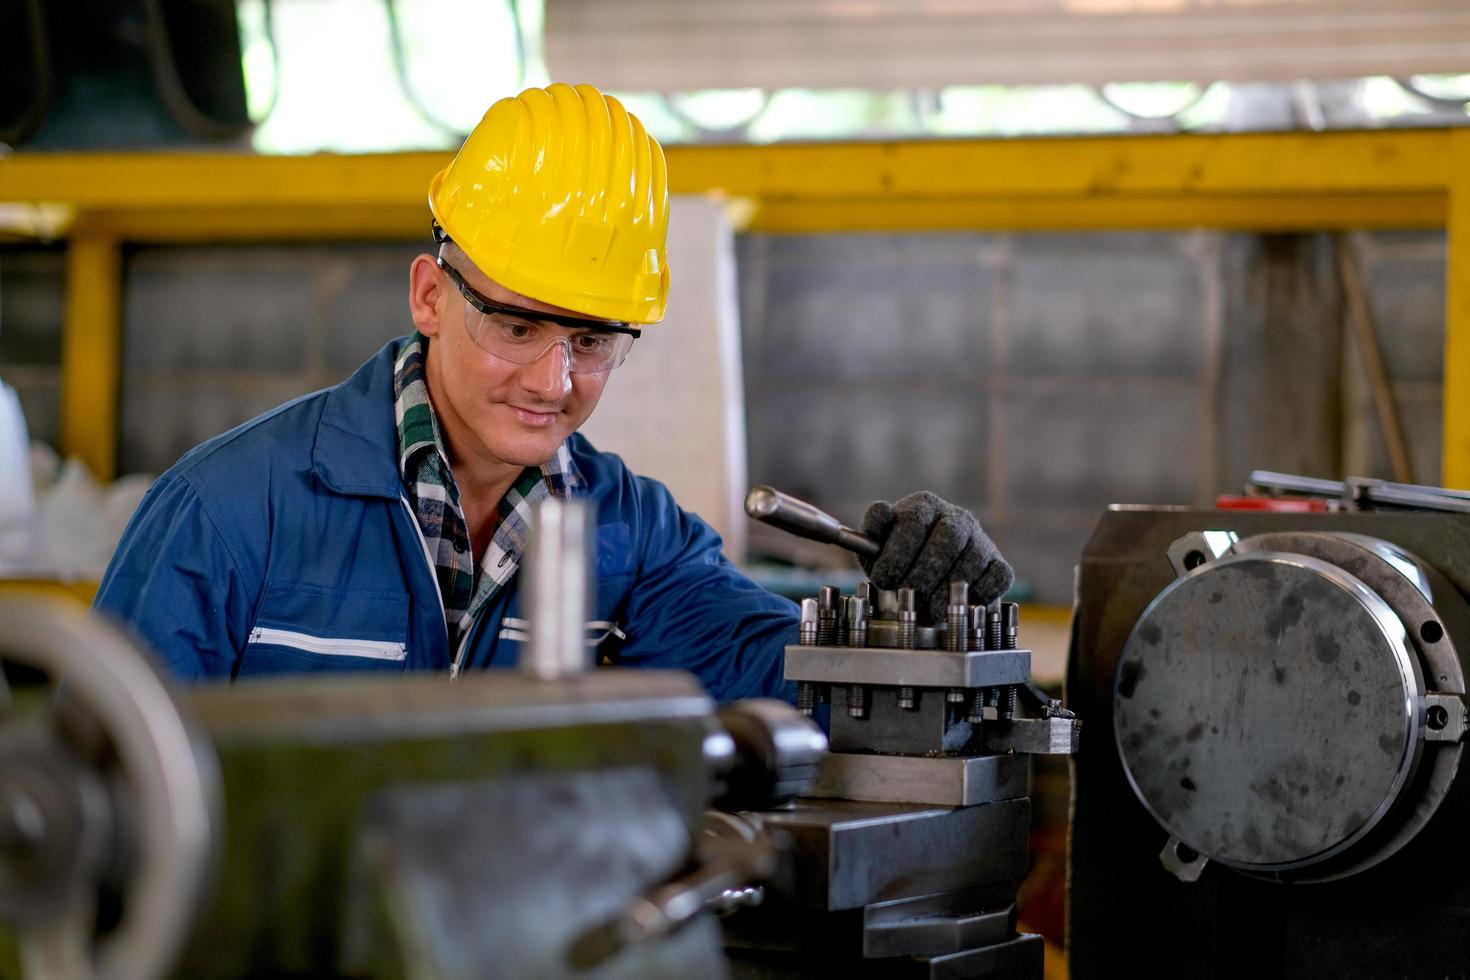 Male technician working on machinery at work photo